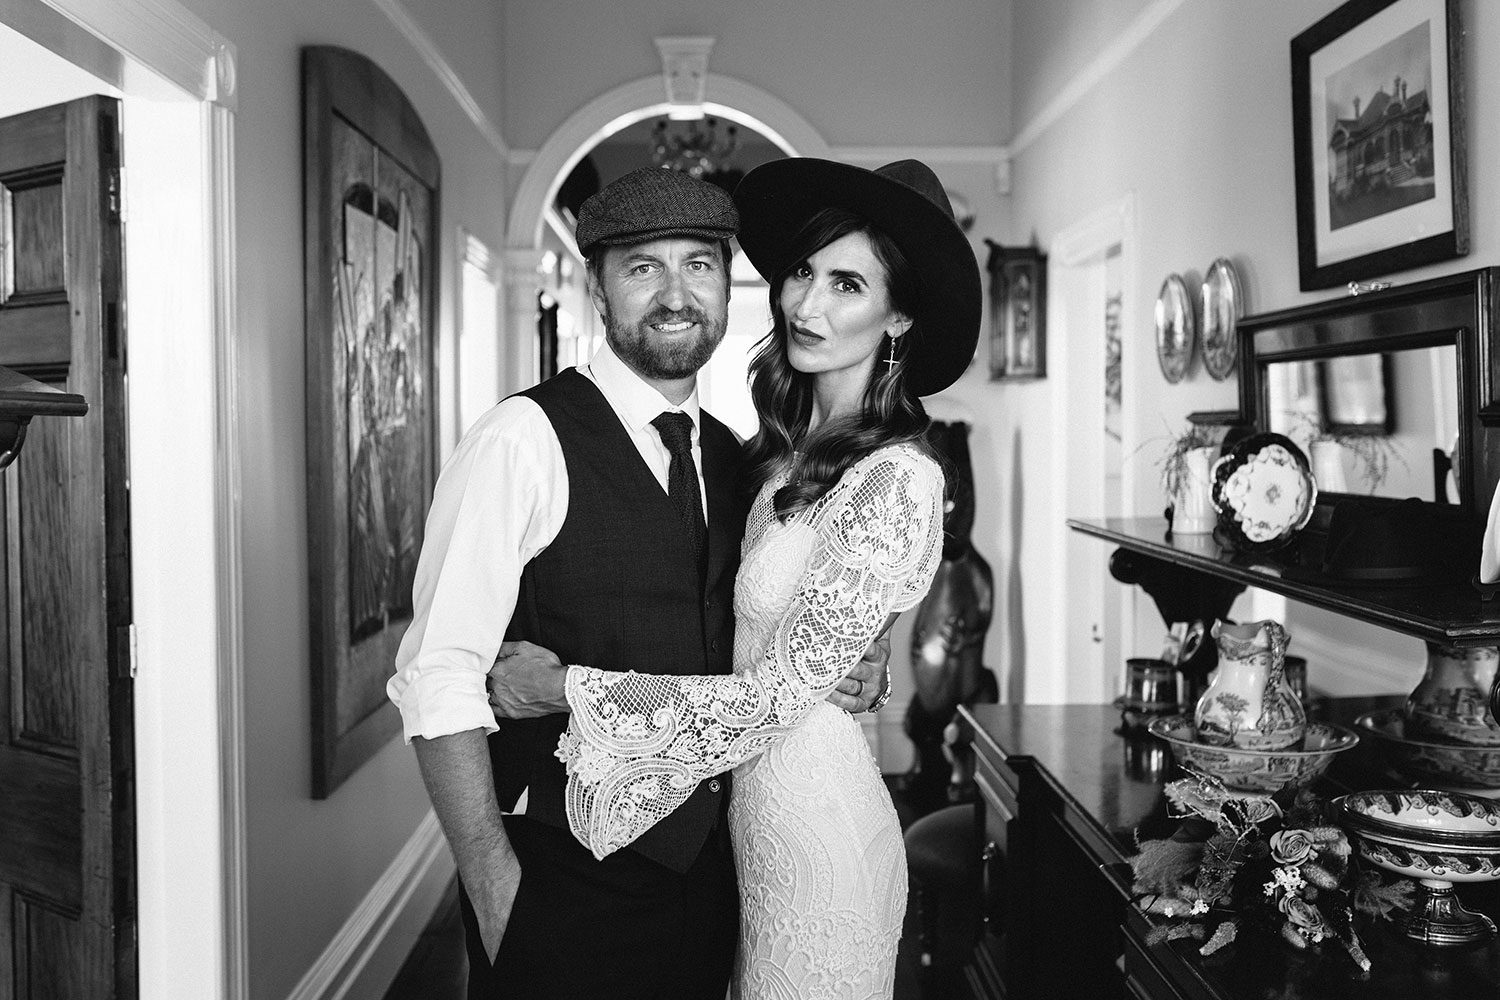 Bride wearing Sabine wedding gown by Auckland wedding dress maker Vinka Design, with French crochet lace detail and long sleeves - black and white in hallway